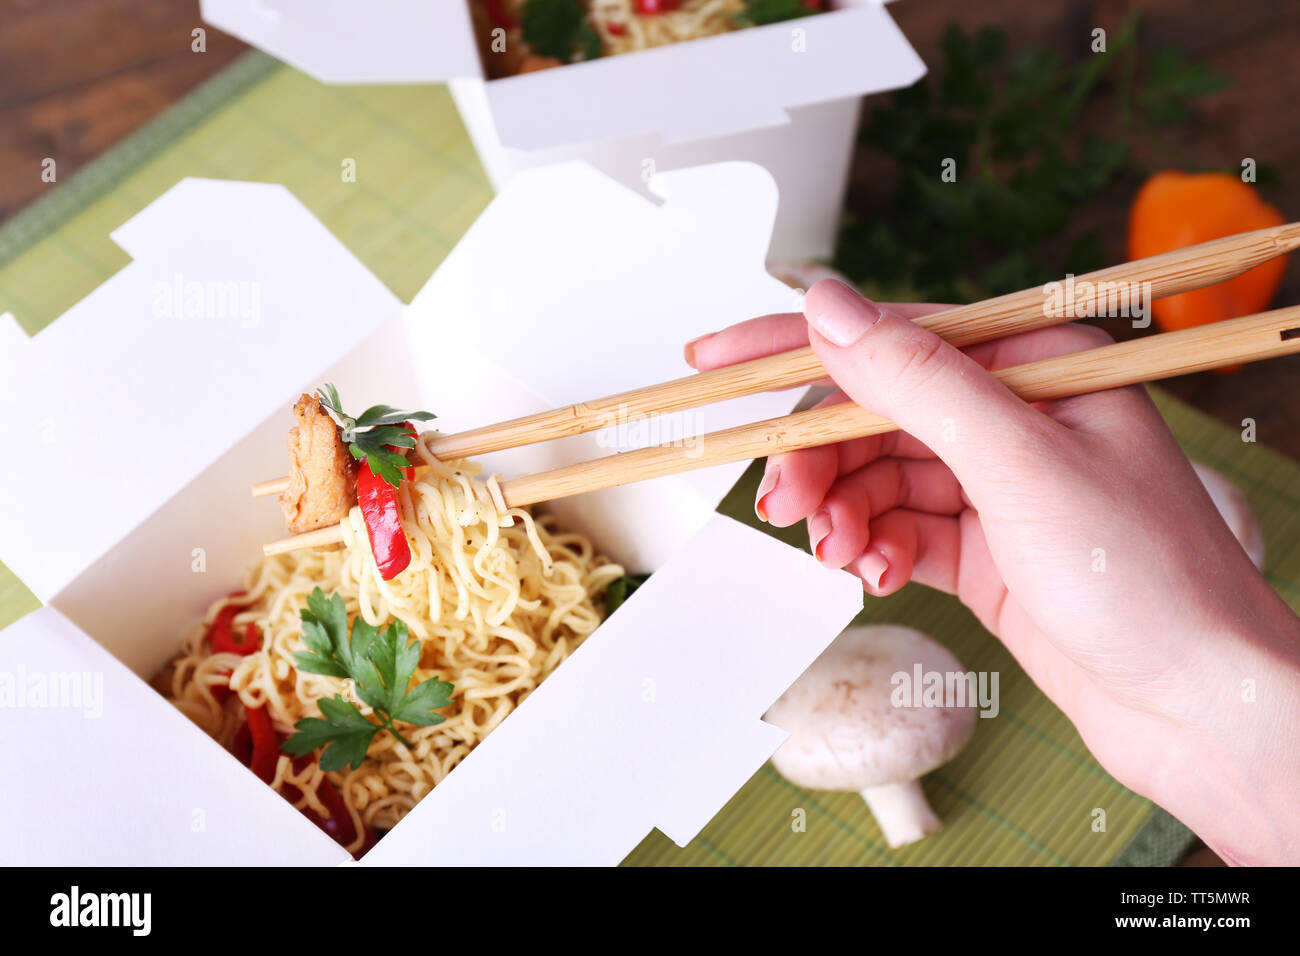 Chinese noodles and sticks in takeaway box on mat background - Stock Image